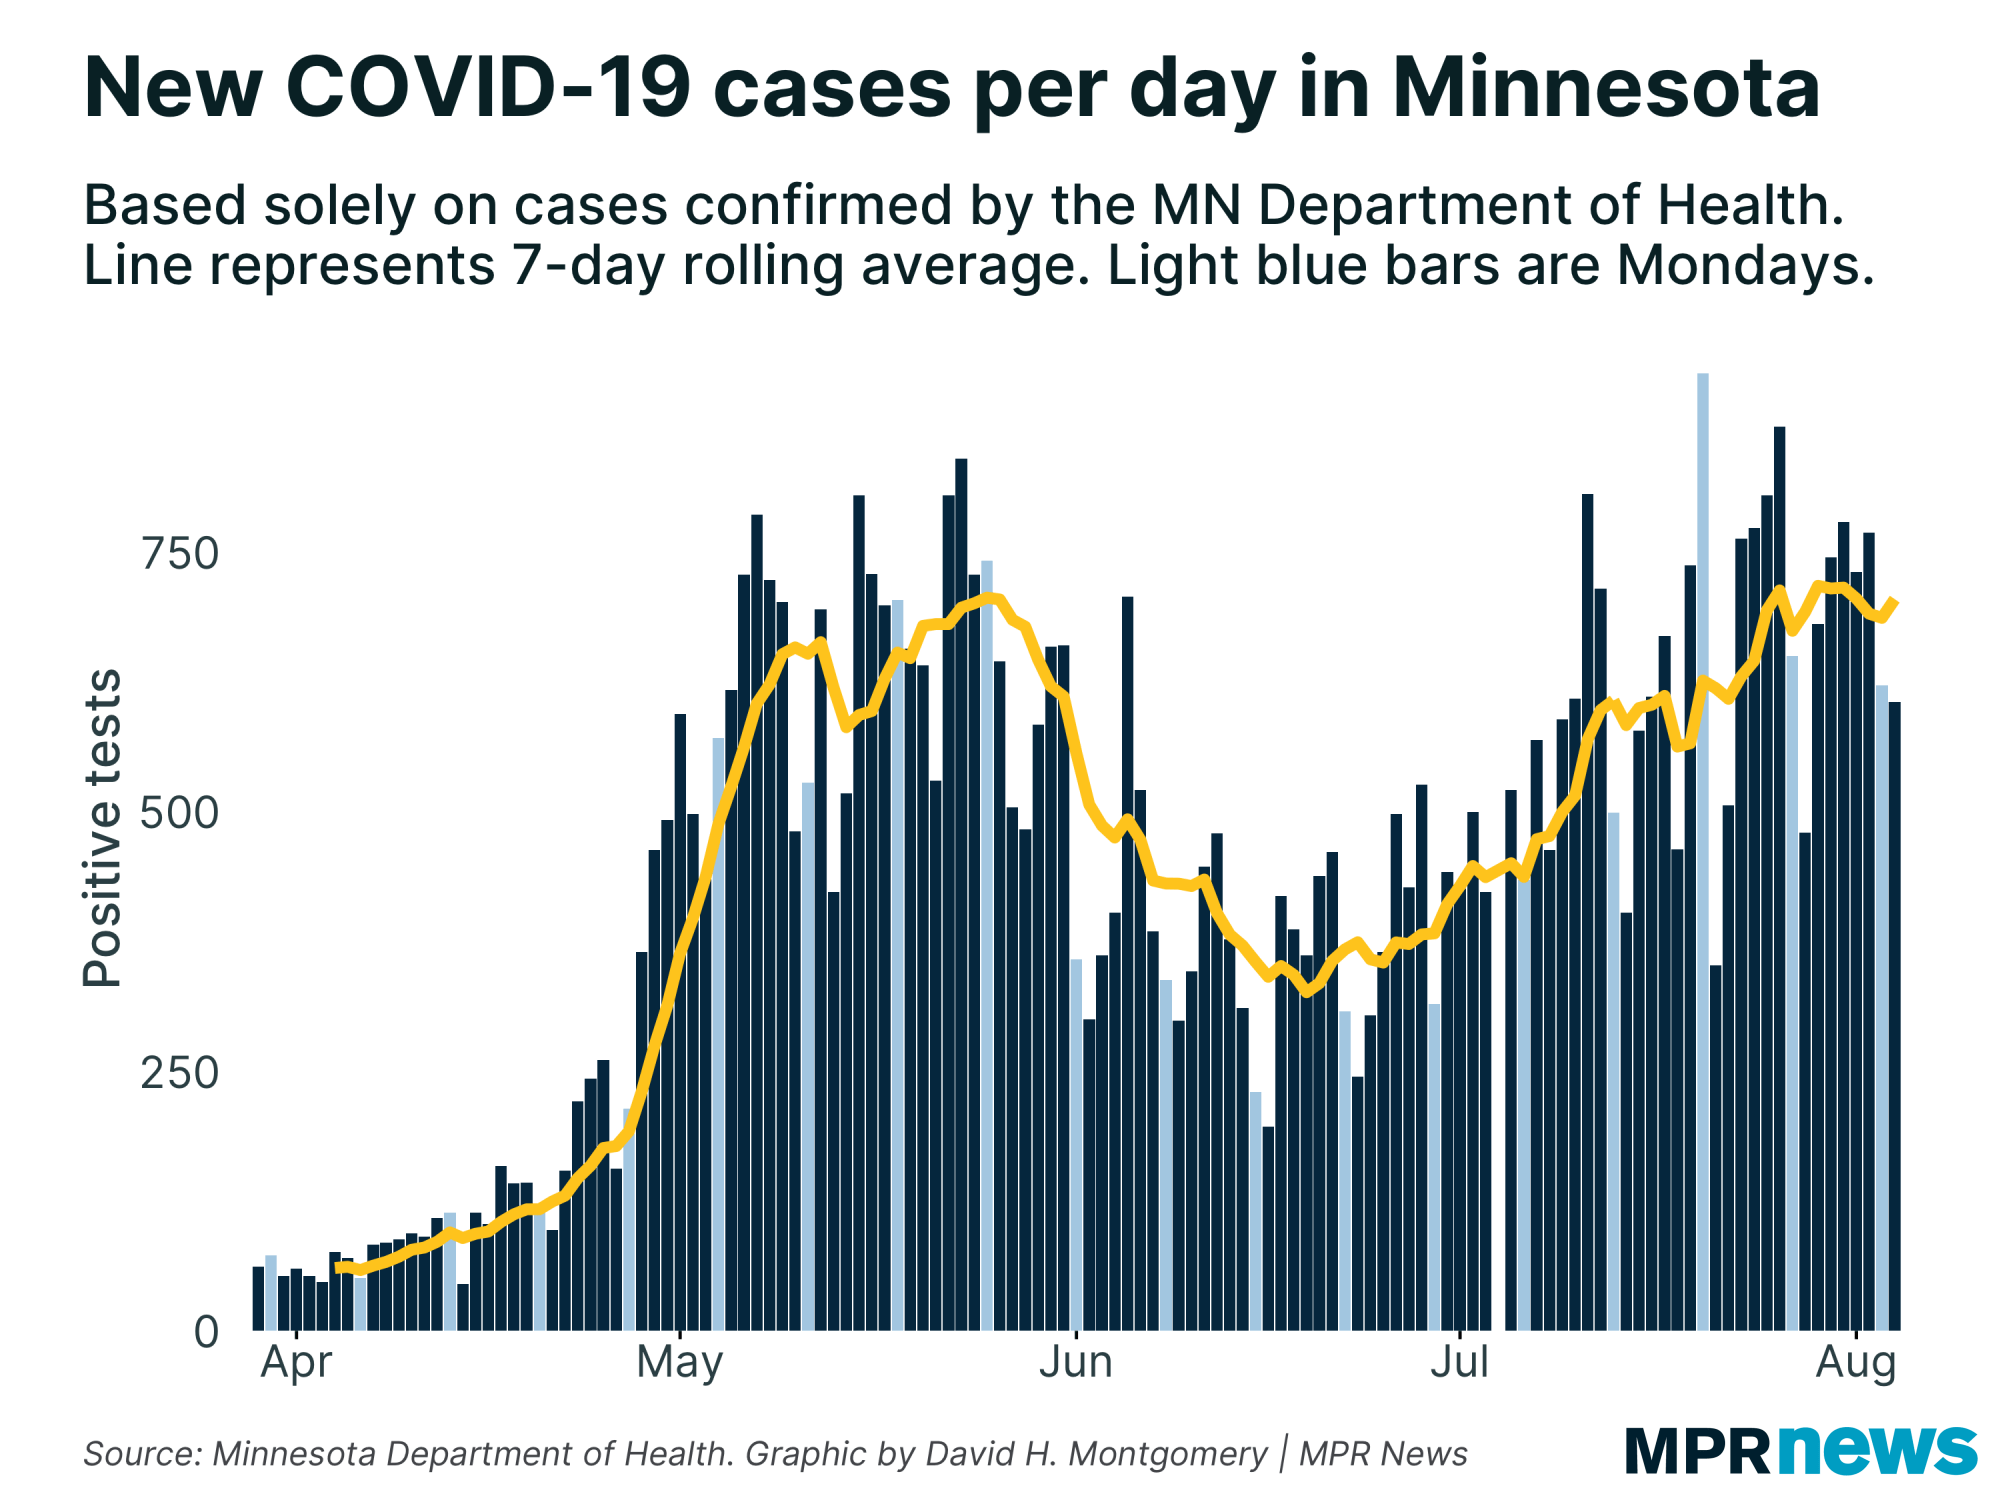 New cases of COVID-19 per day in Minnesota